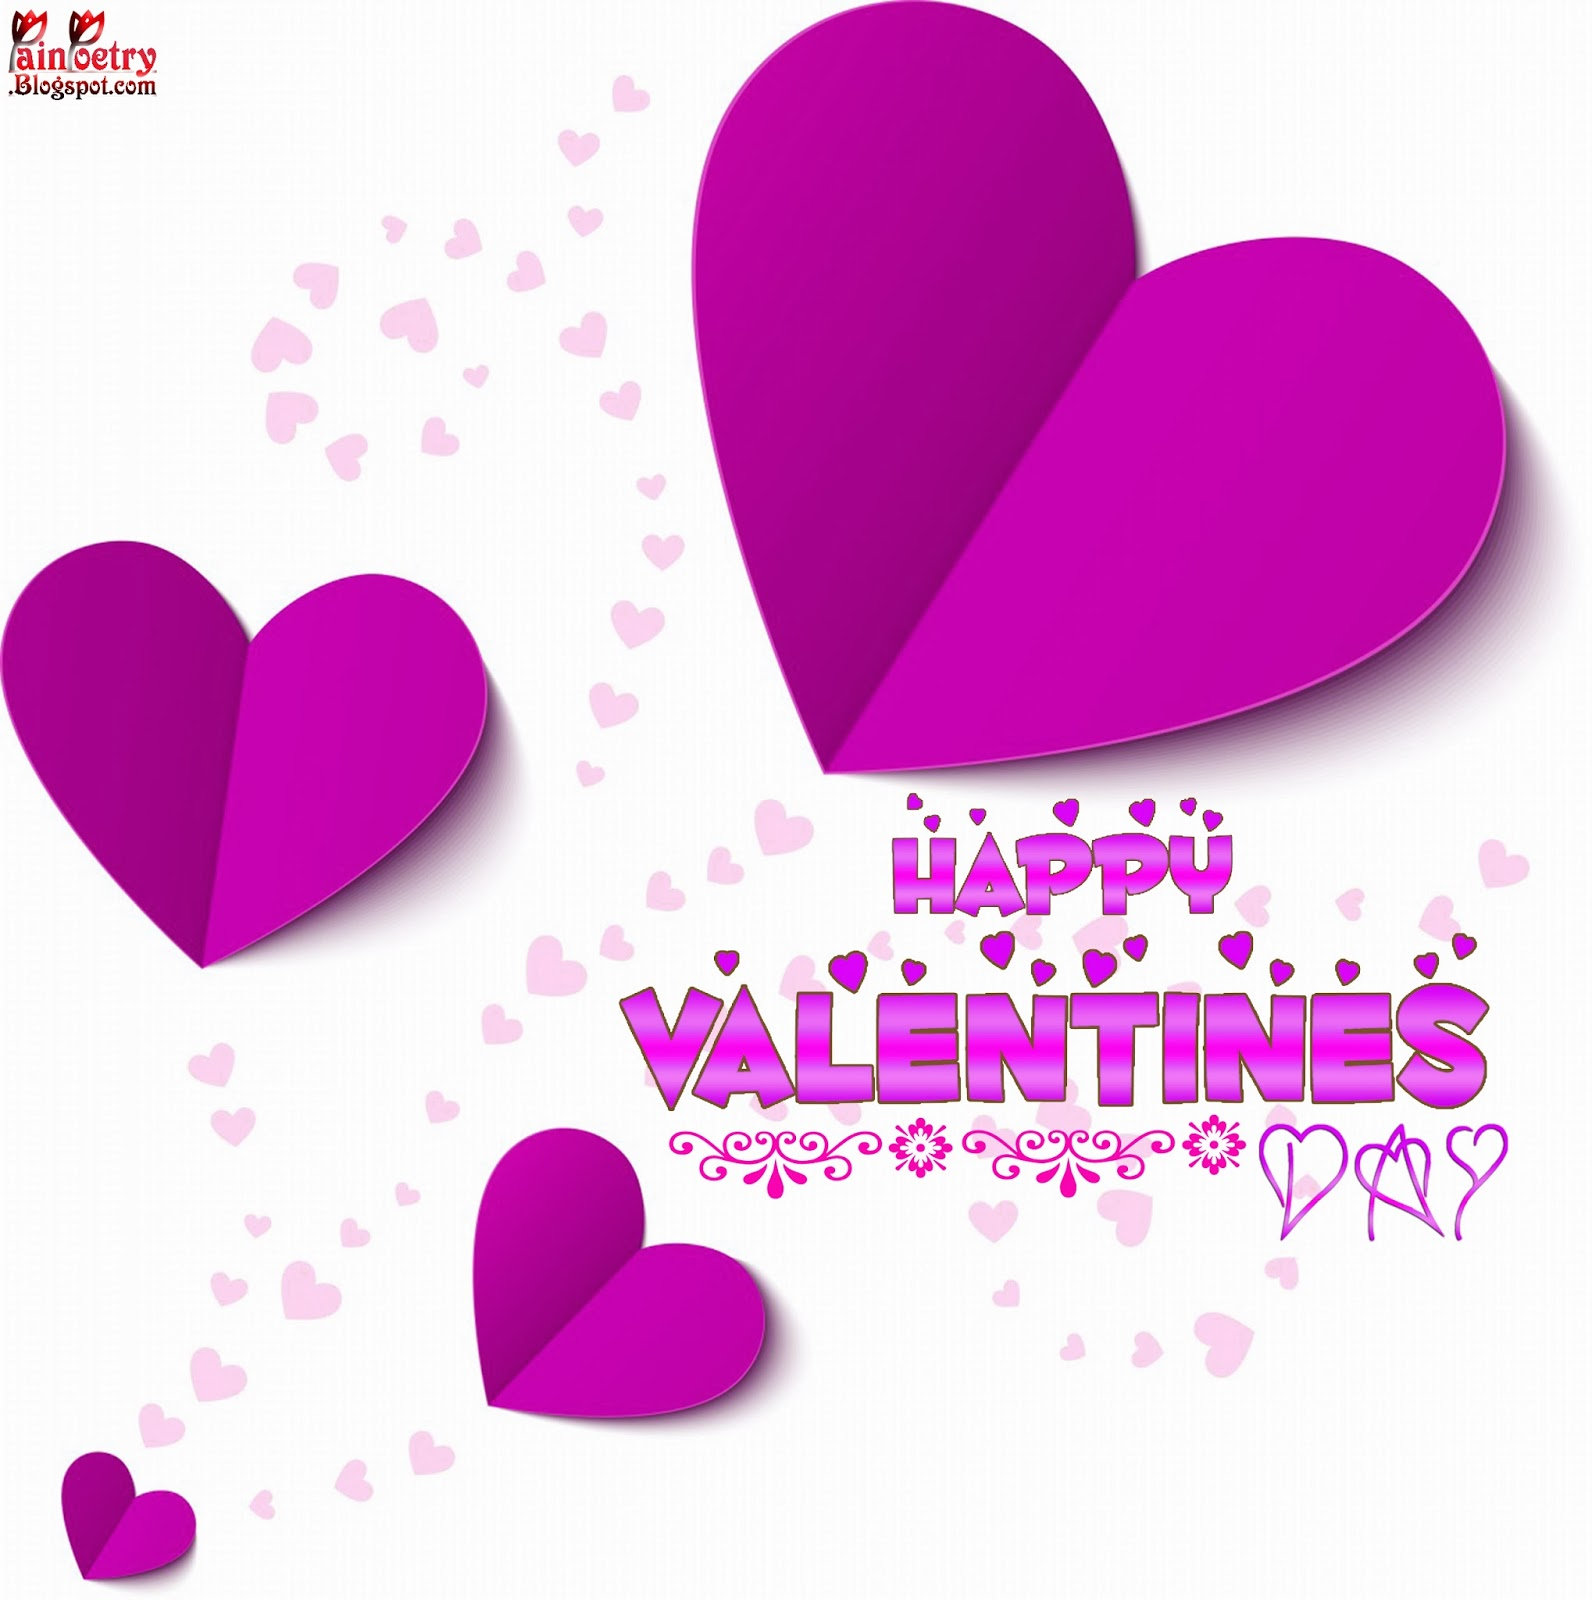 Happy-Valentines-Day-Wishes-Walpaper-With-Pink-Heart